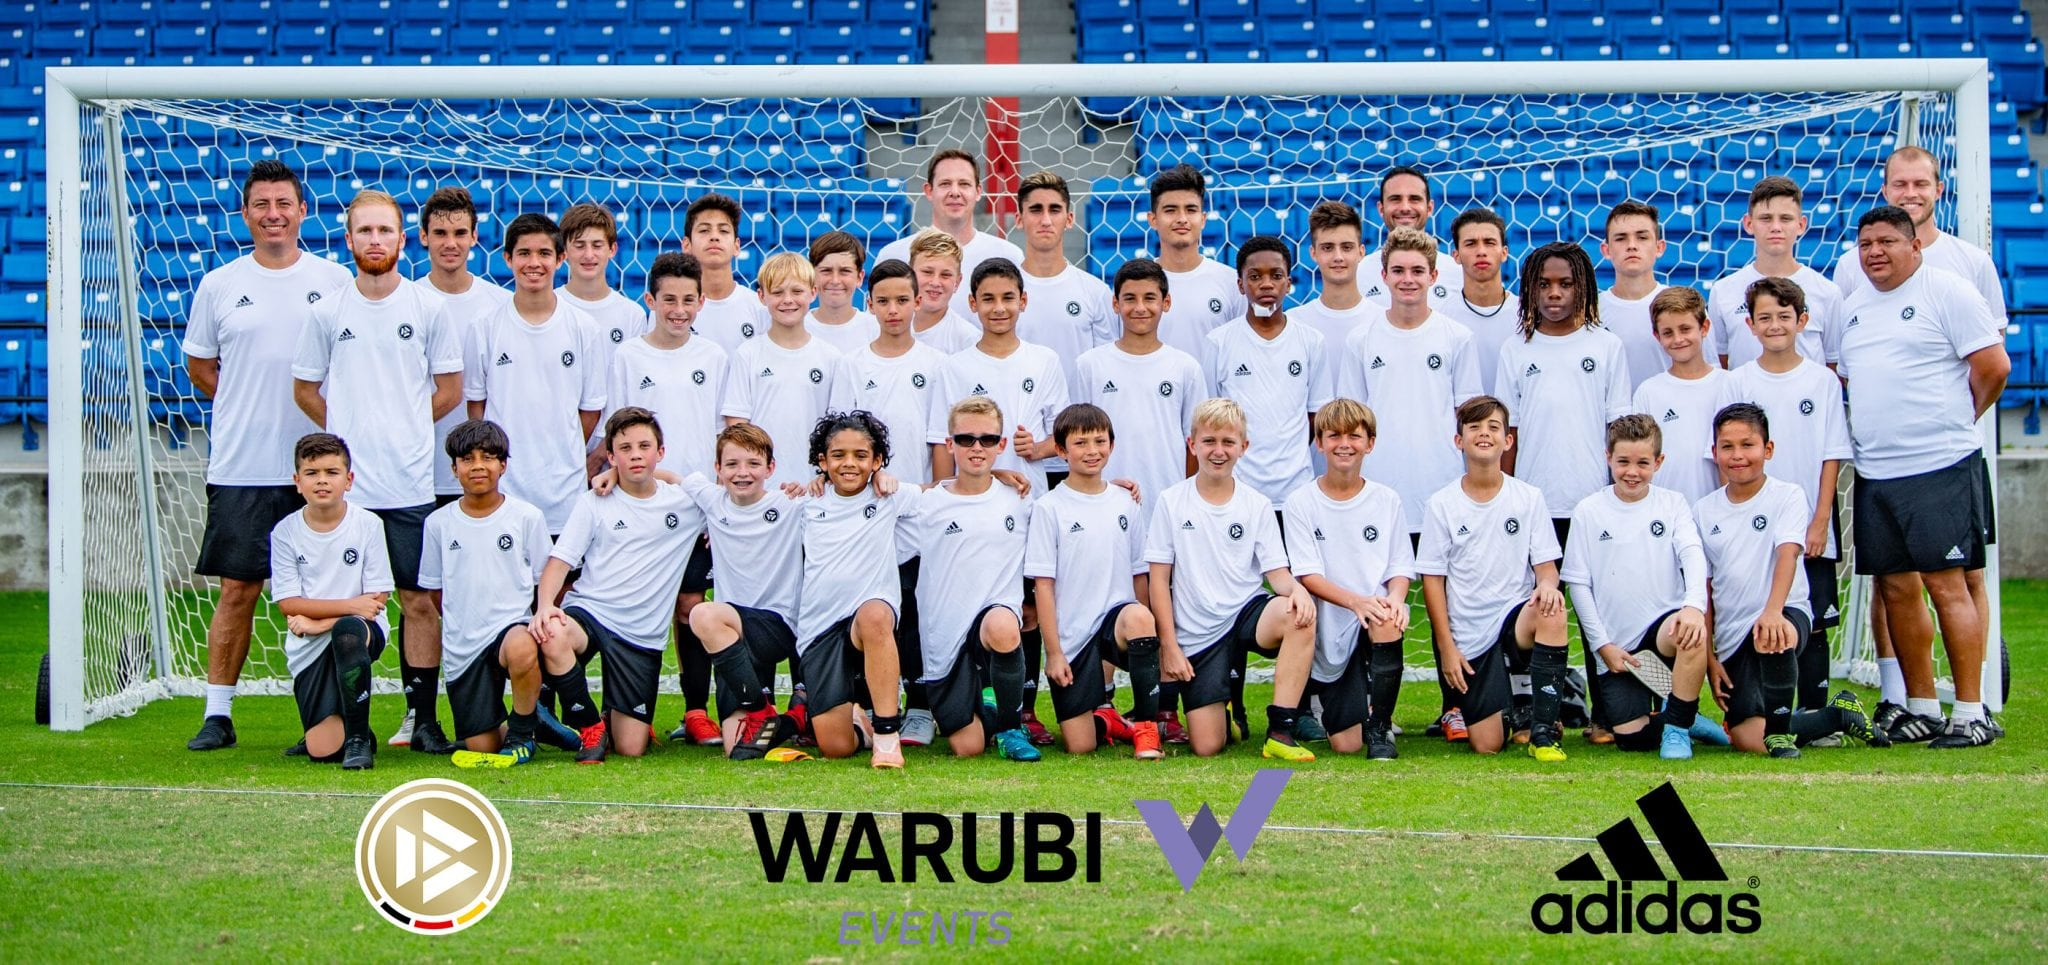 DFB-Akademie Elite Youth Soccer Camp Team Picture